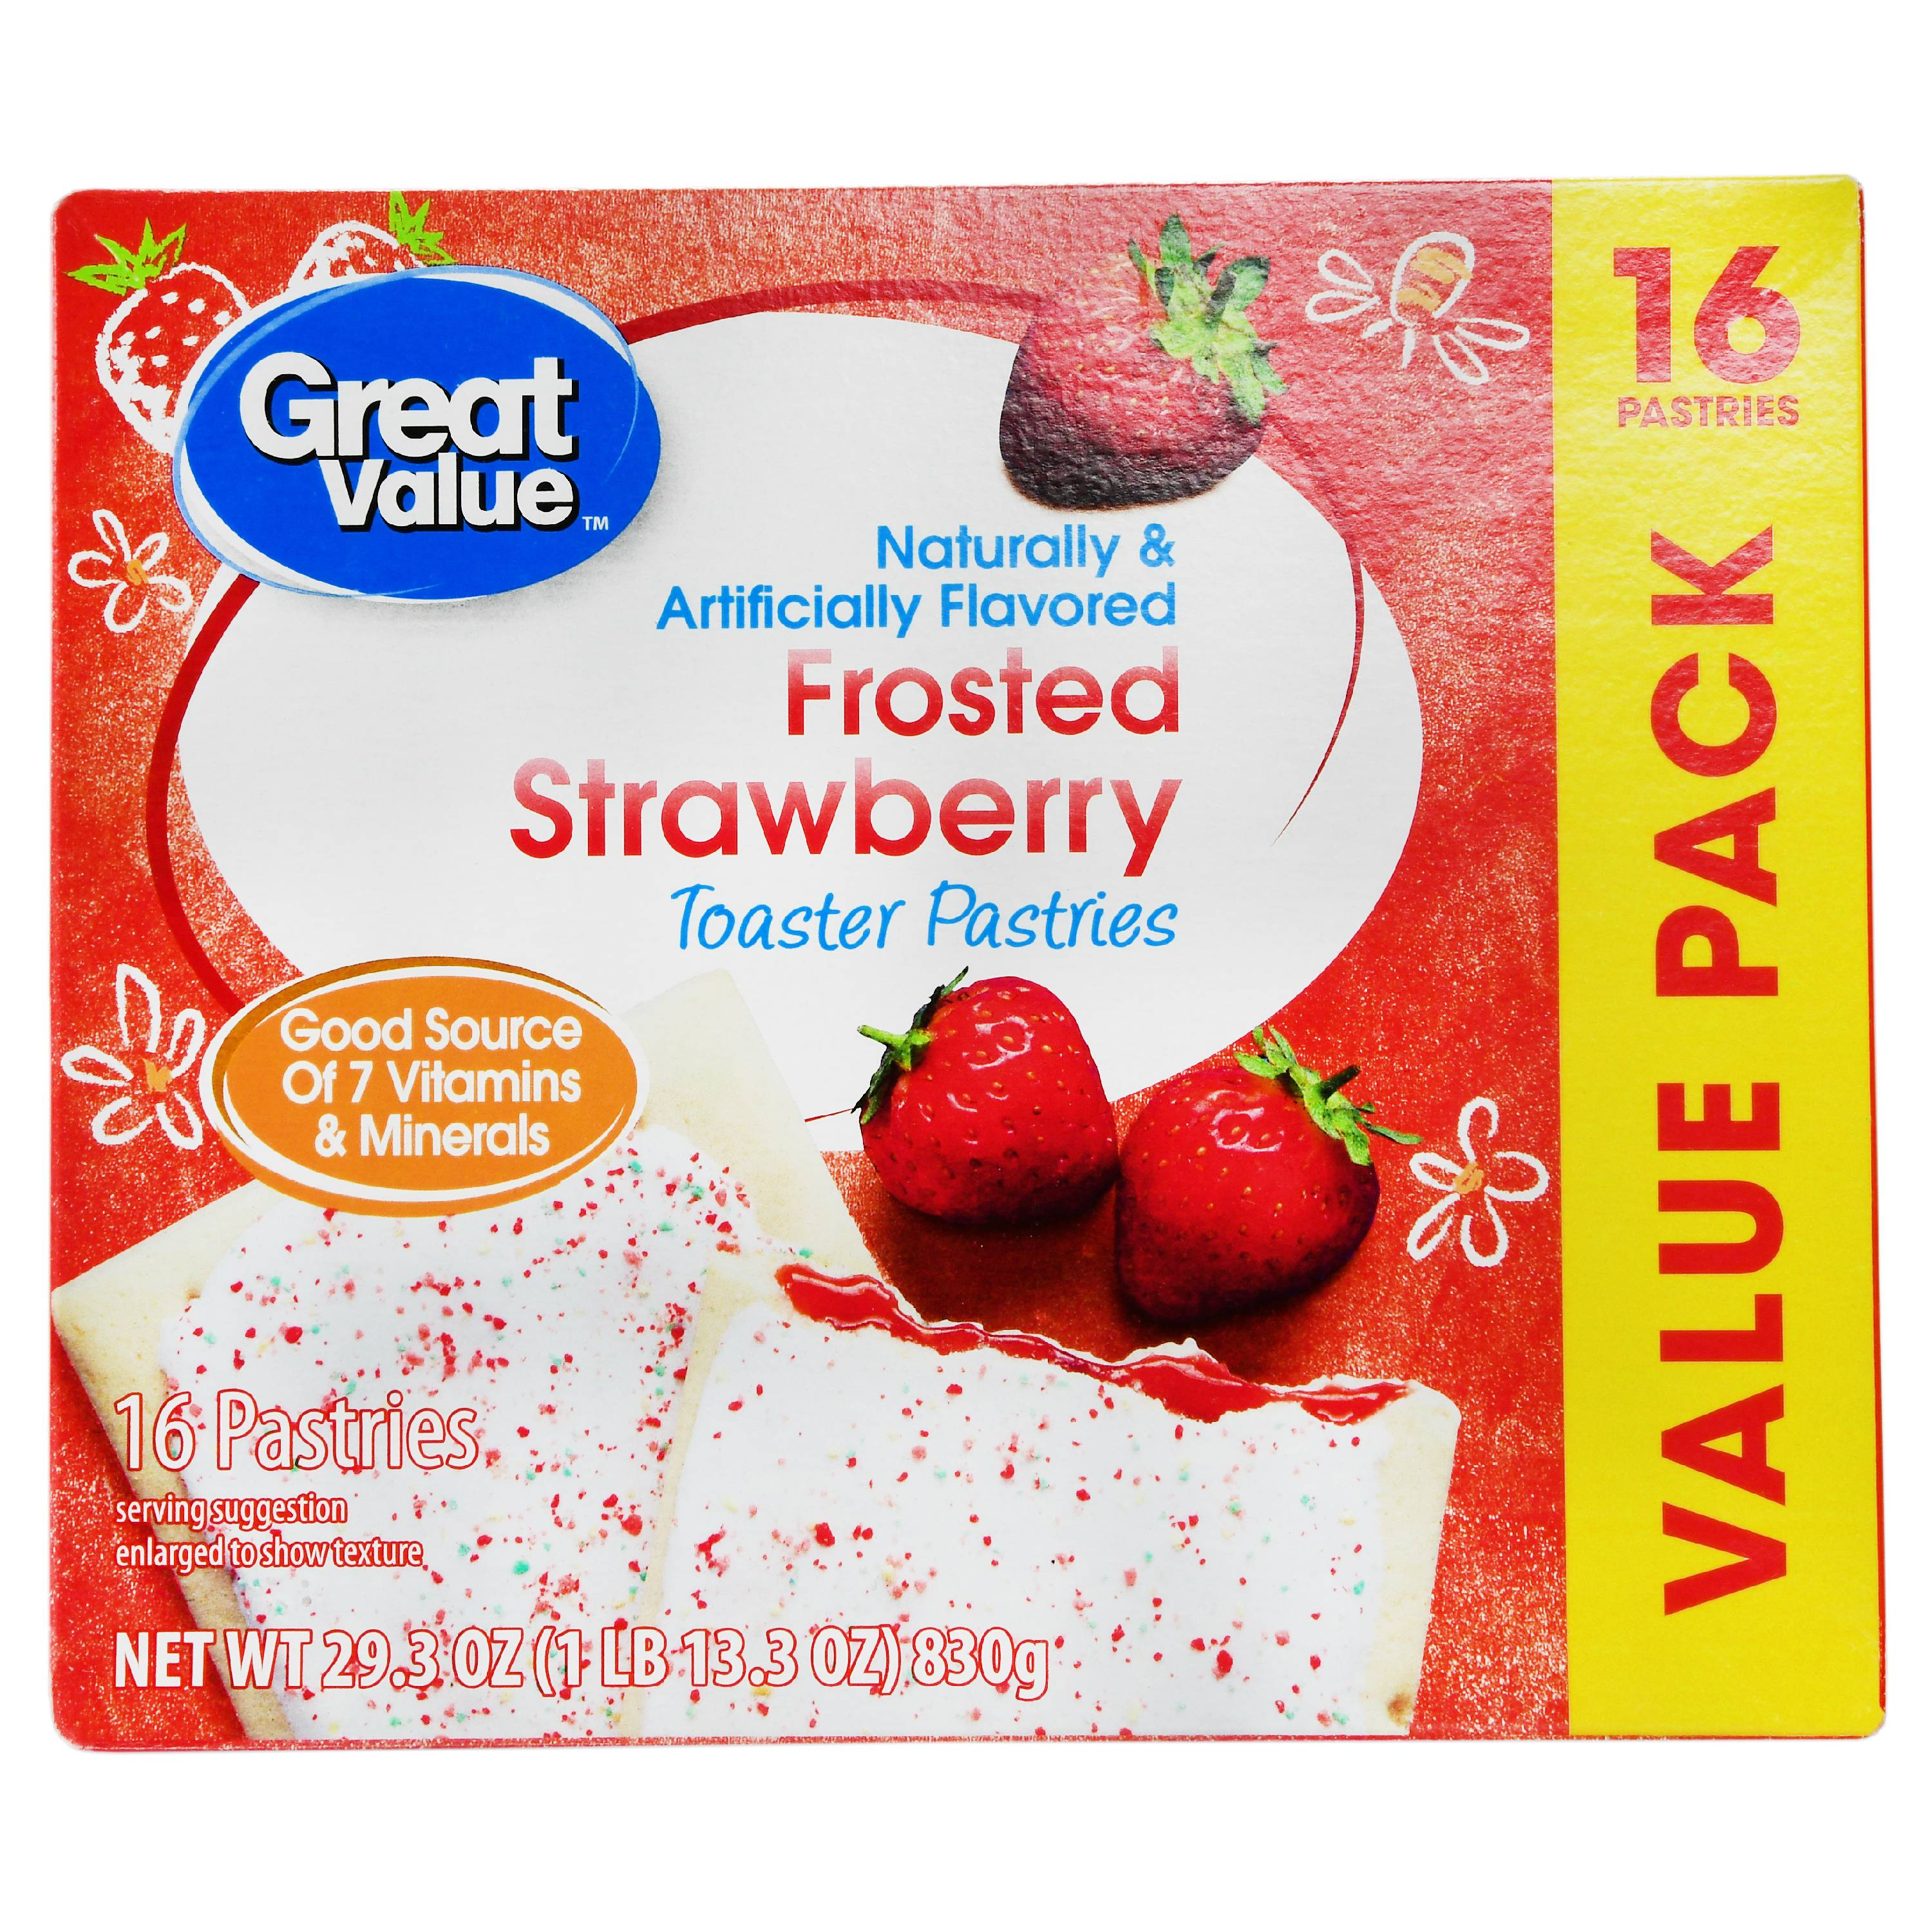 Great Value Frosted Toaster Pastries, Strawberry, 29.3 oz, 16 Count